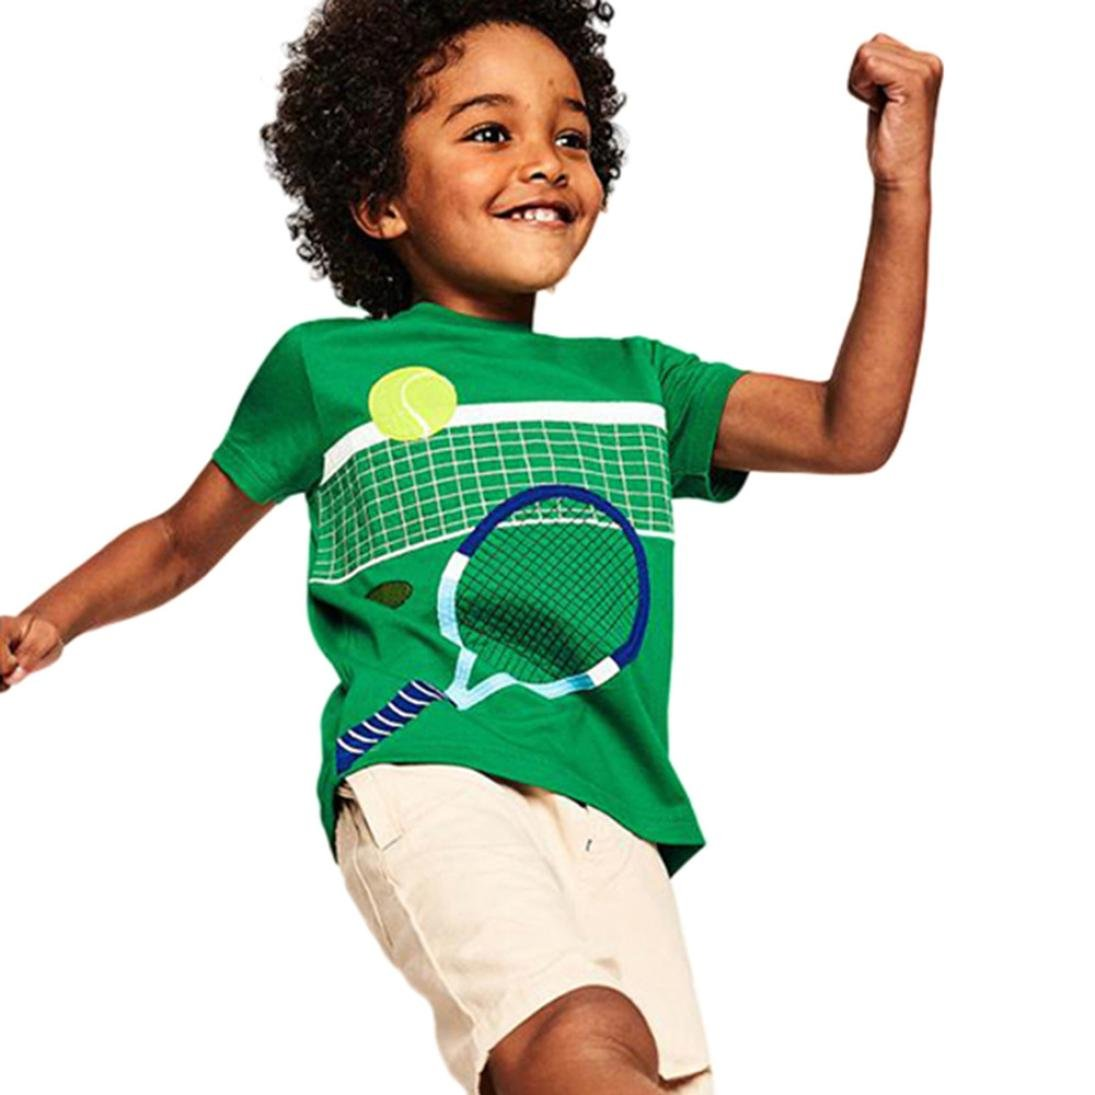 Transer Short Sleeve T-Shirt Tee Shirt Tops for Infant Toddler Kids Baby Boys Girls Age 1-8